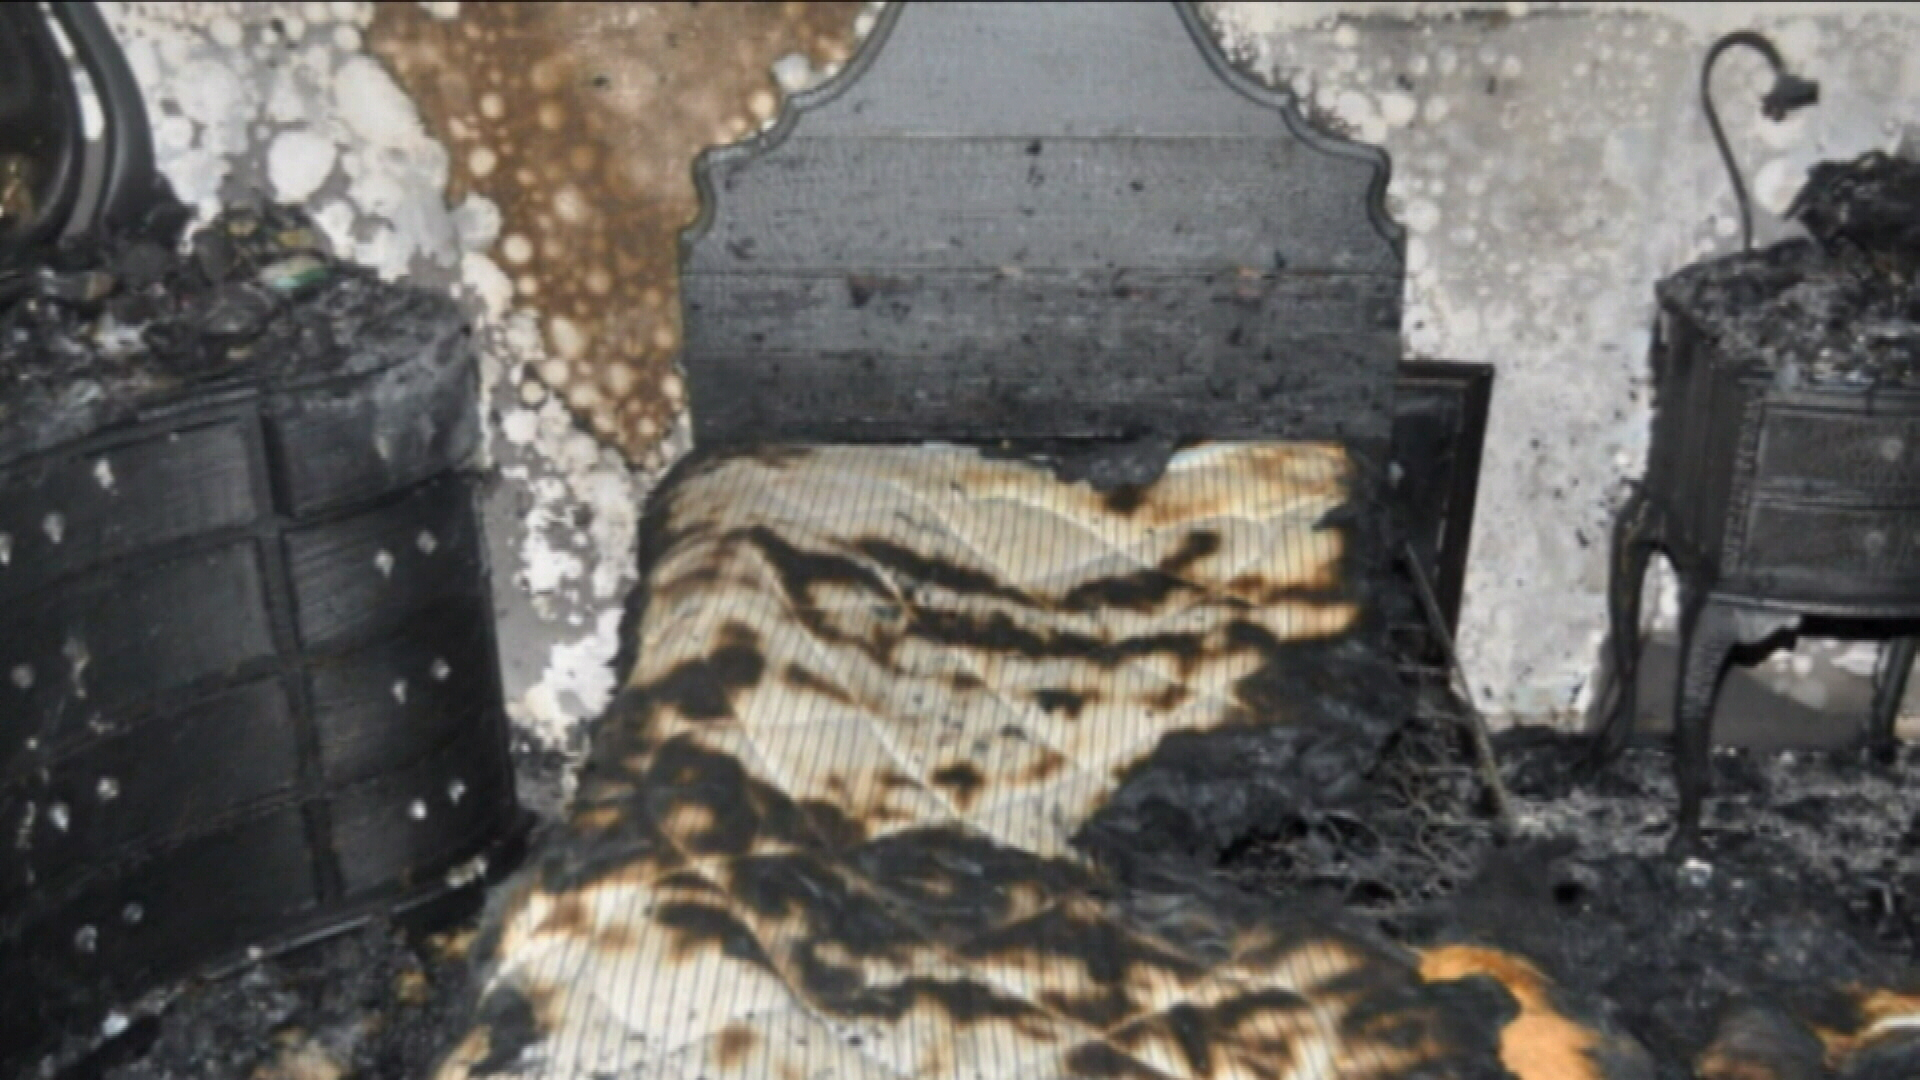 Someone's bed completely burnt and charred after heatpack started fire.